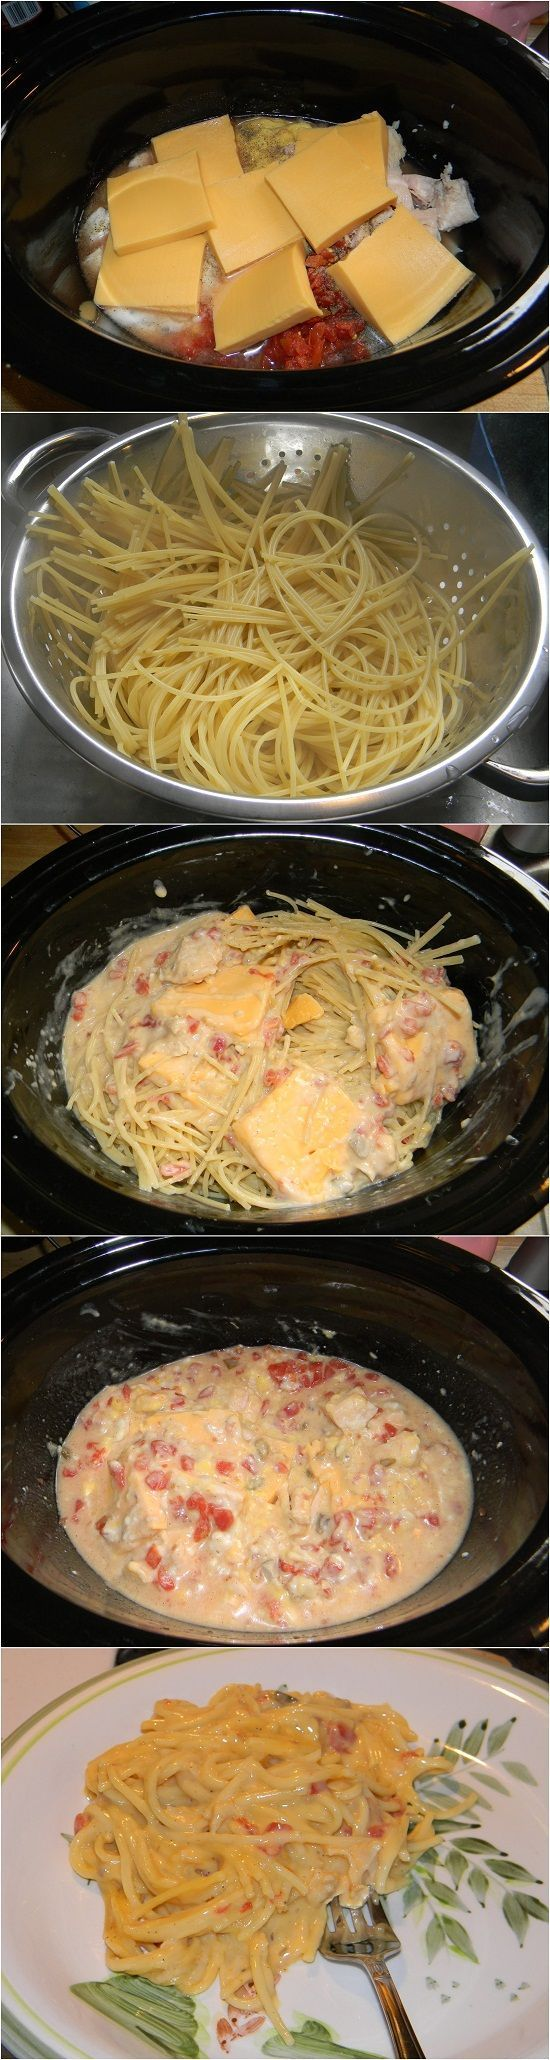 Crock pot Cheesy Chicken Spaghetti - Food by Marry Anne